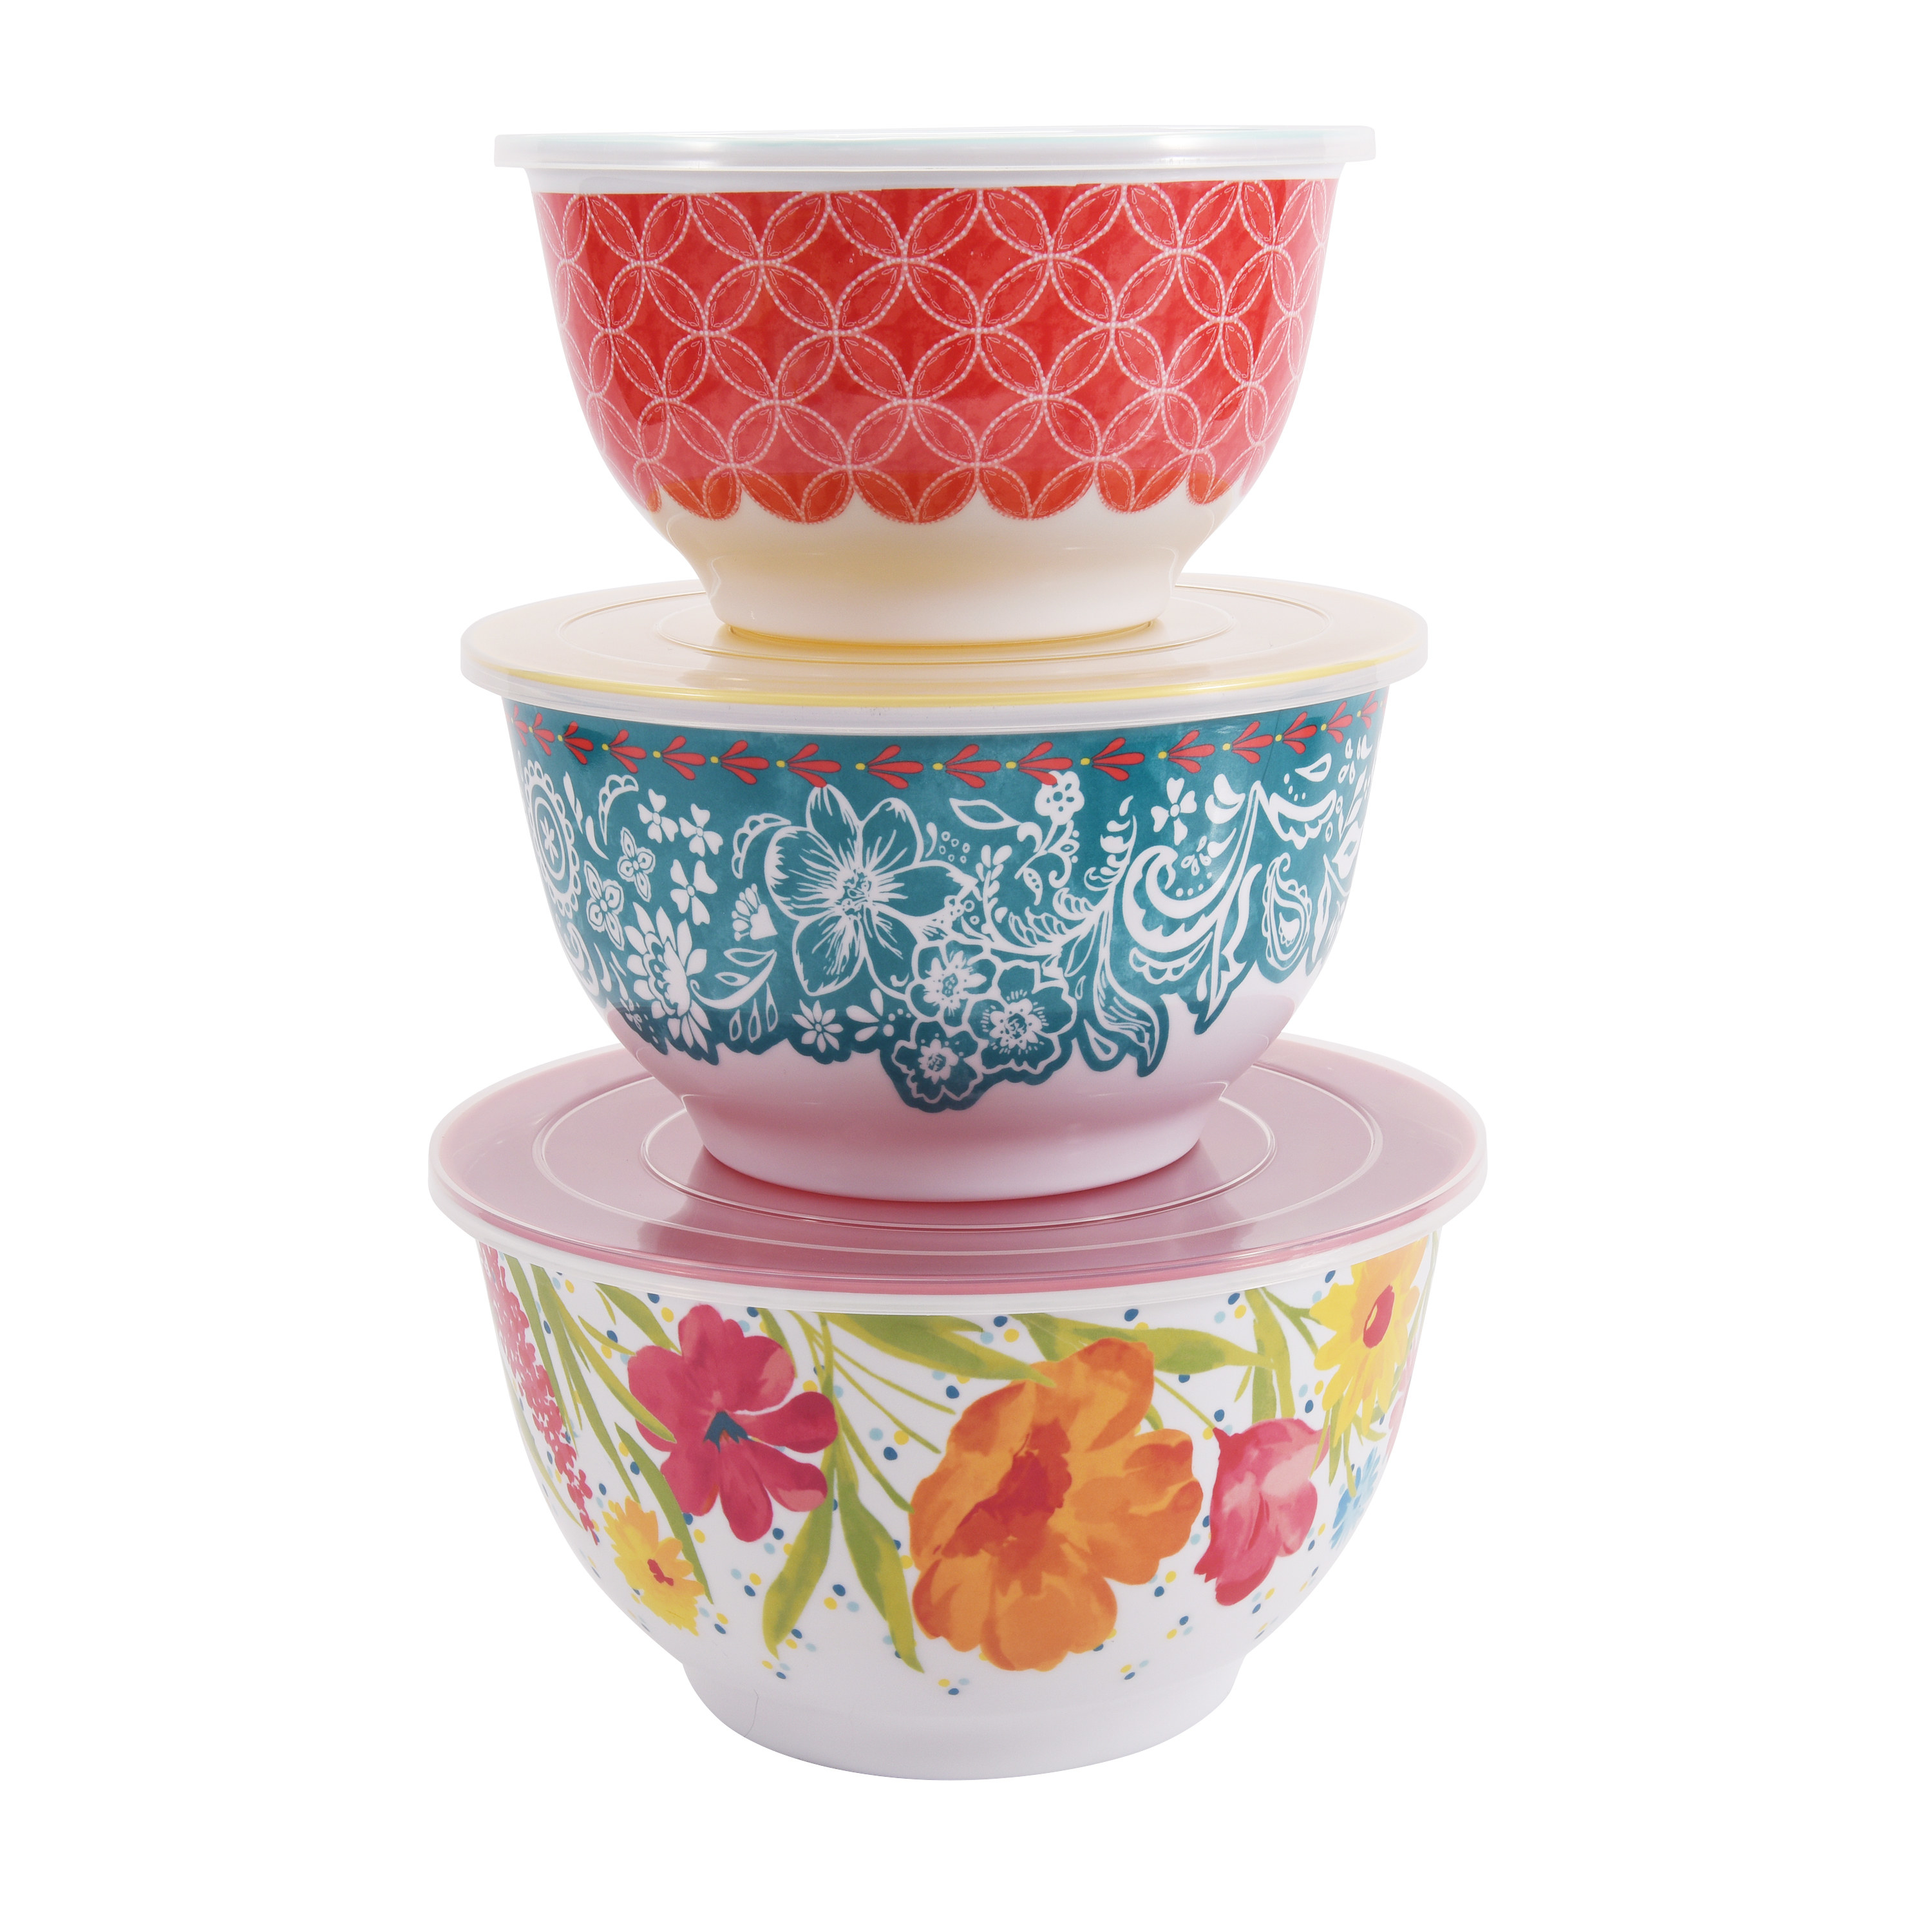 Three floral mixing bowls with lids stacked on top of each other